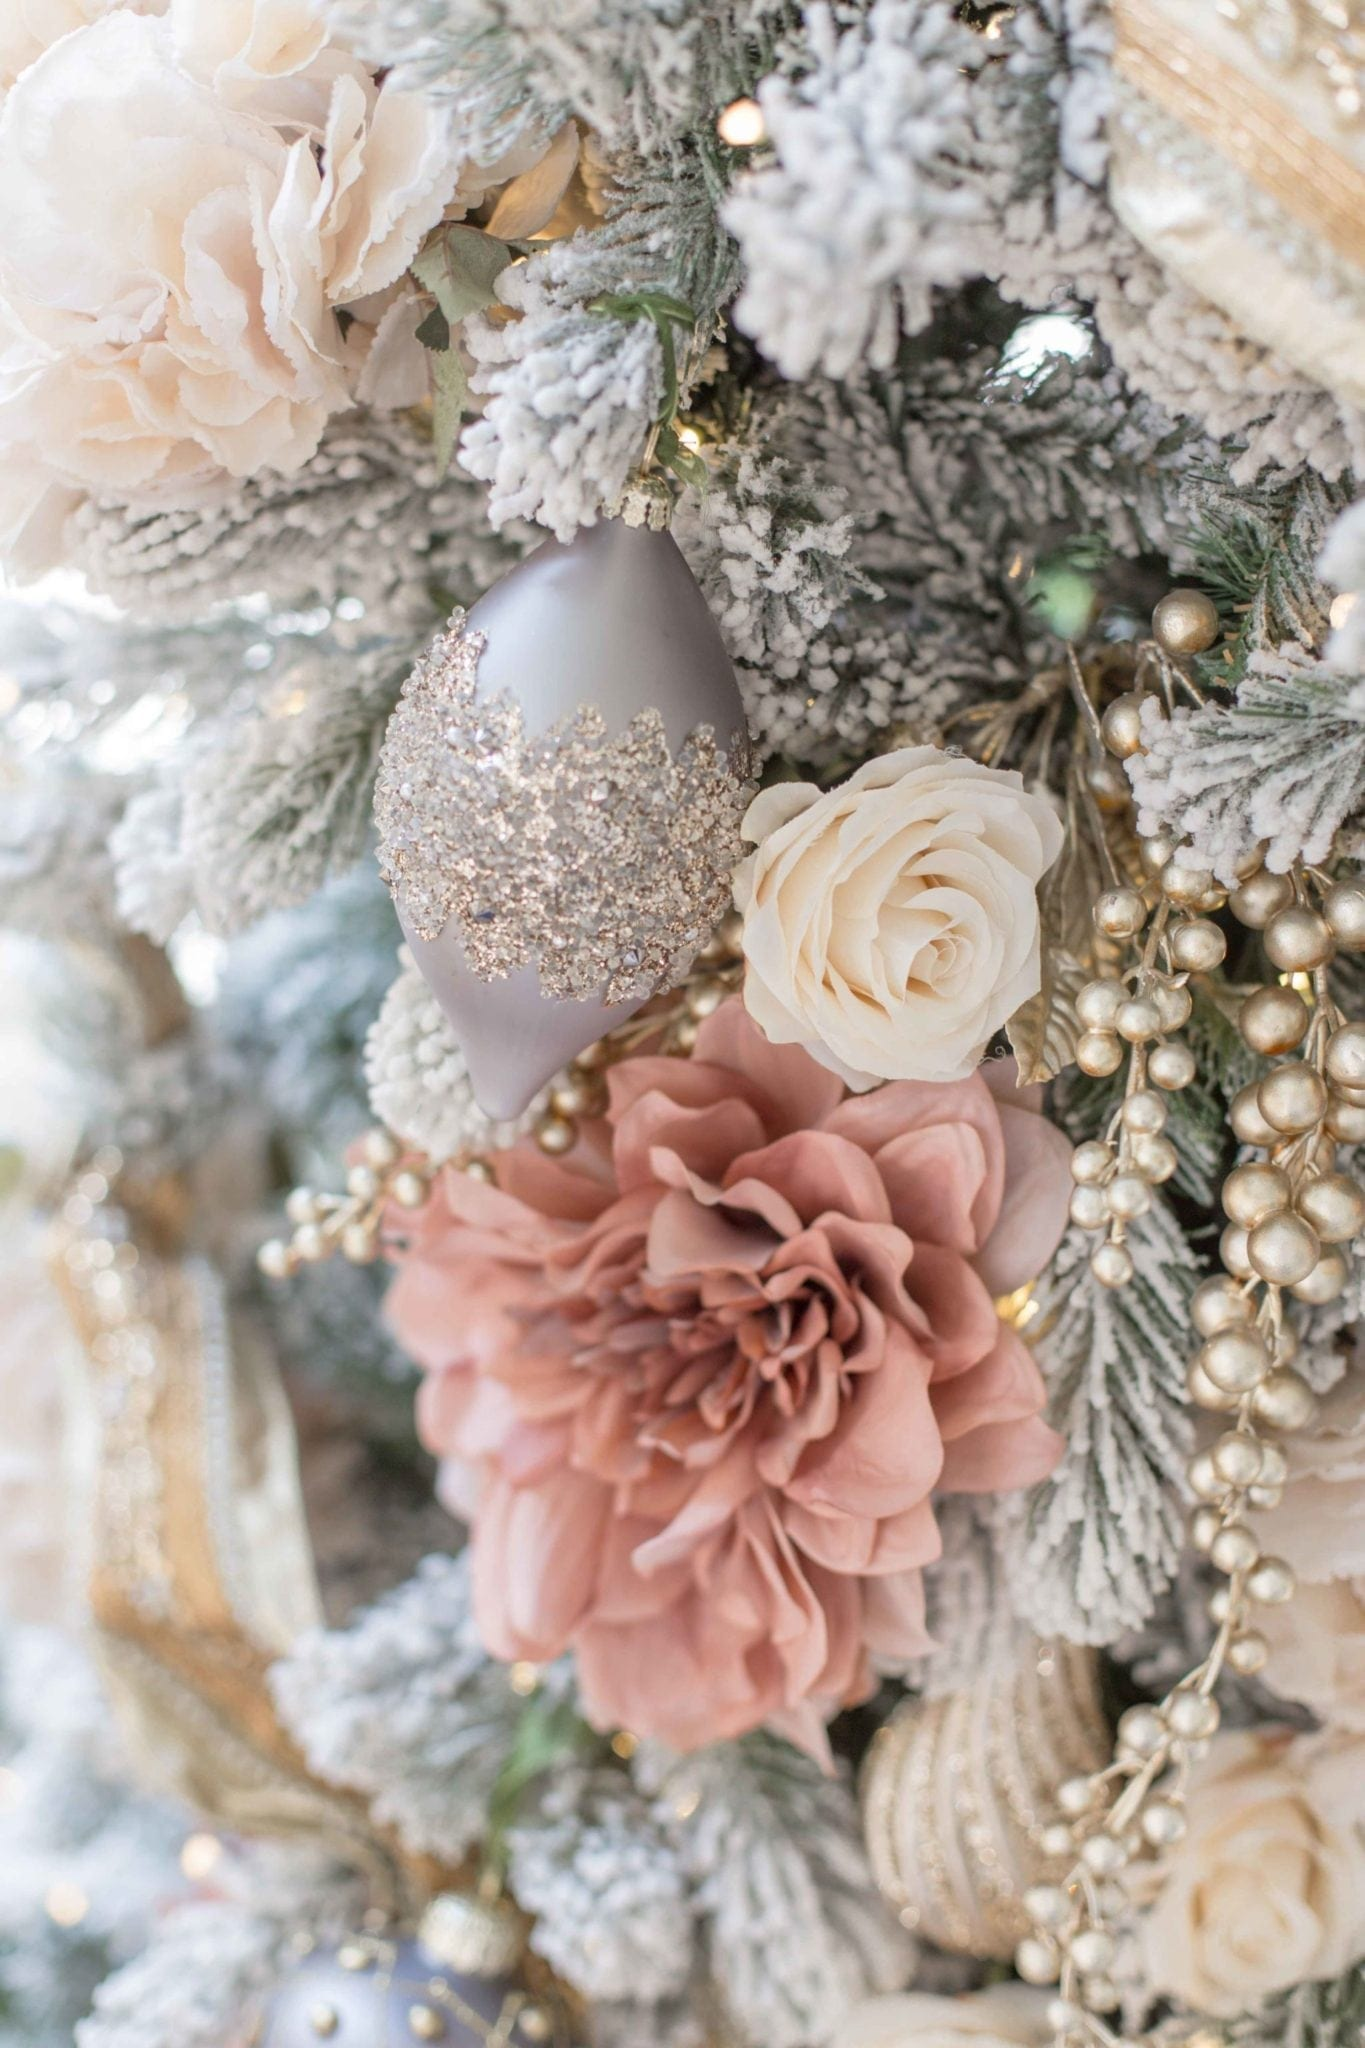 Artificial roses and gray ornaments add a pretty gray and pink design to this King of Christmas artificial tree. Tips to decorate a gray, pink, ivory and gold Christmas tree!